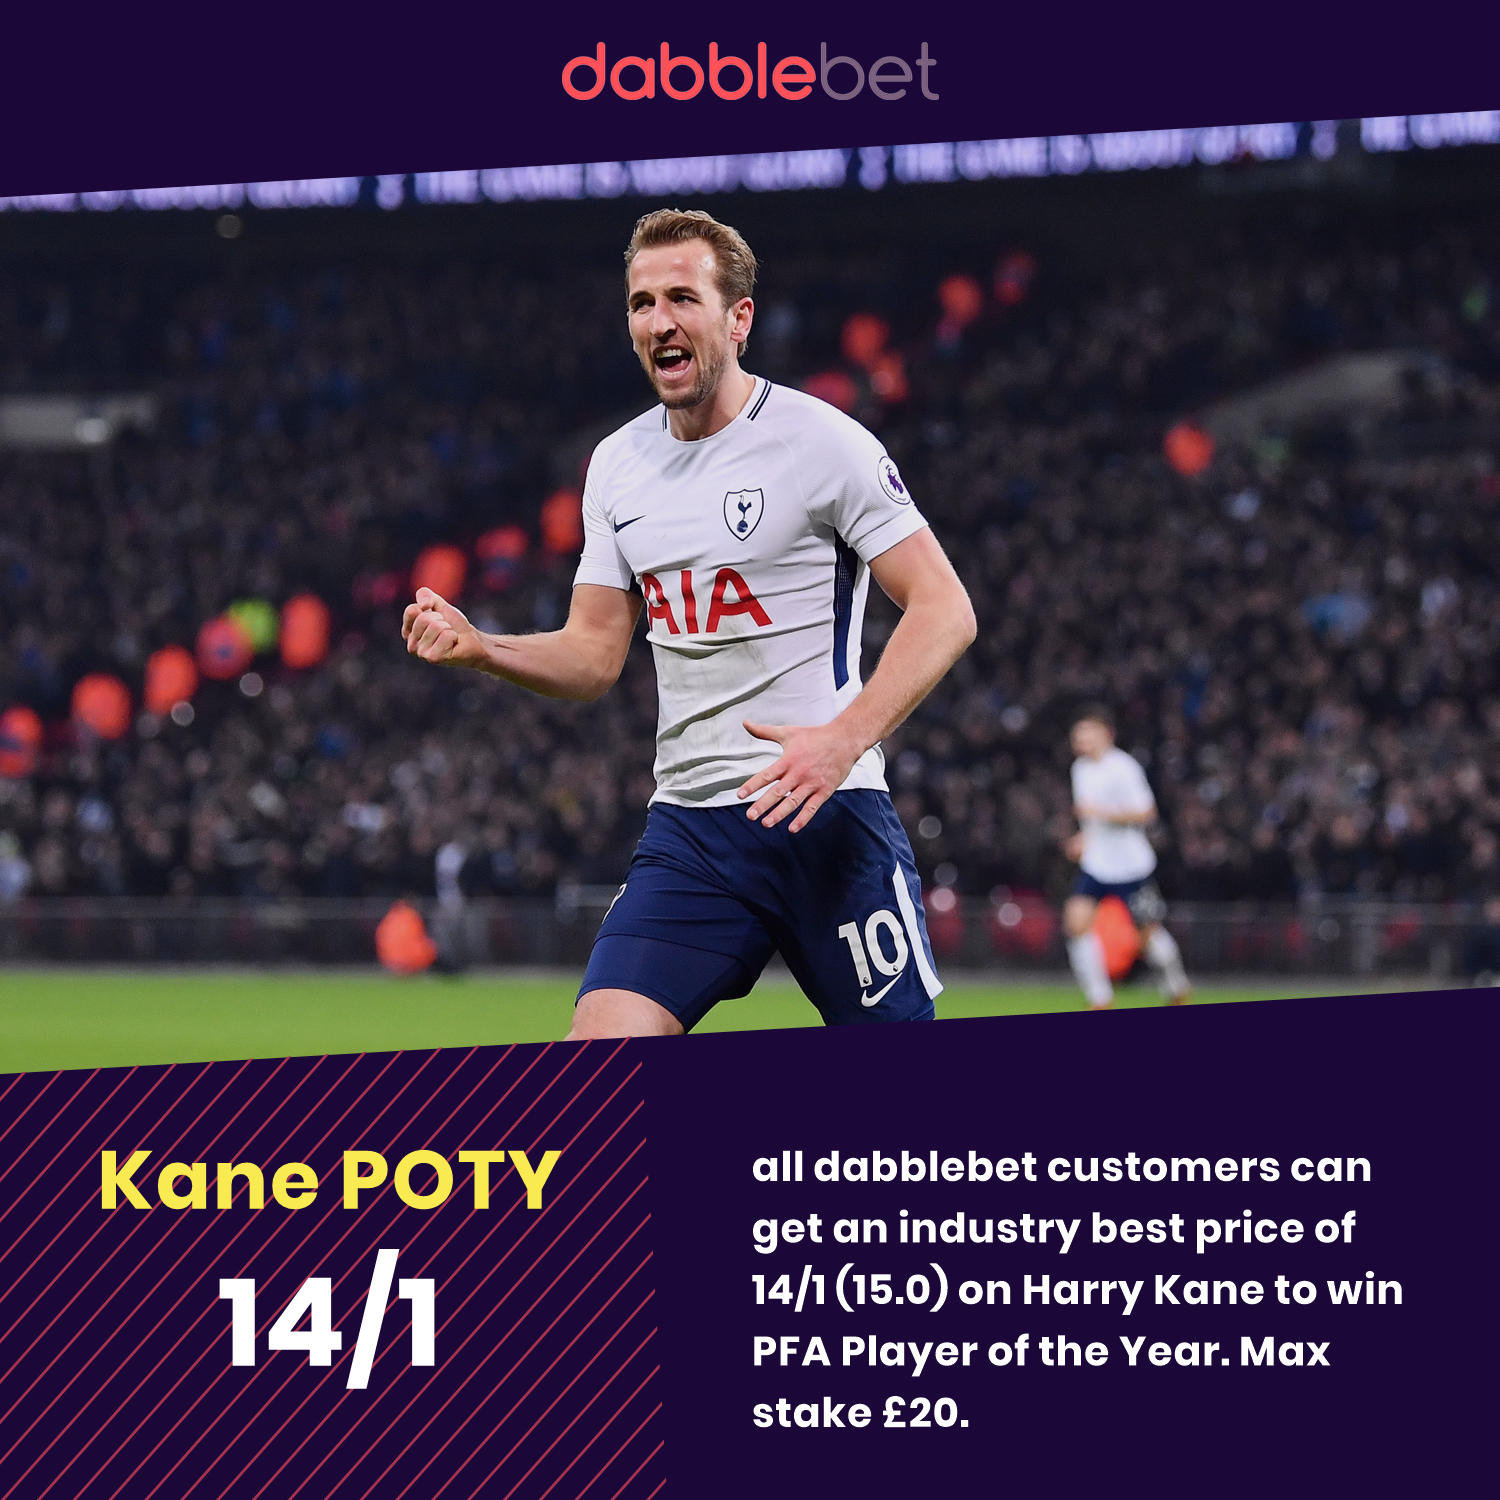 Kane player of the year boost